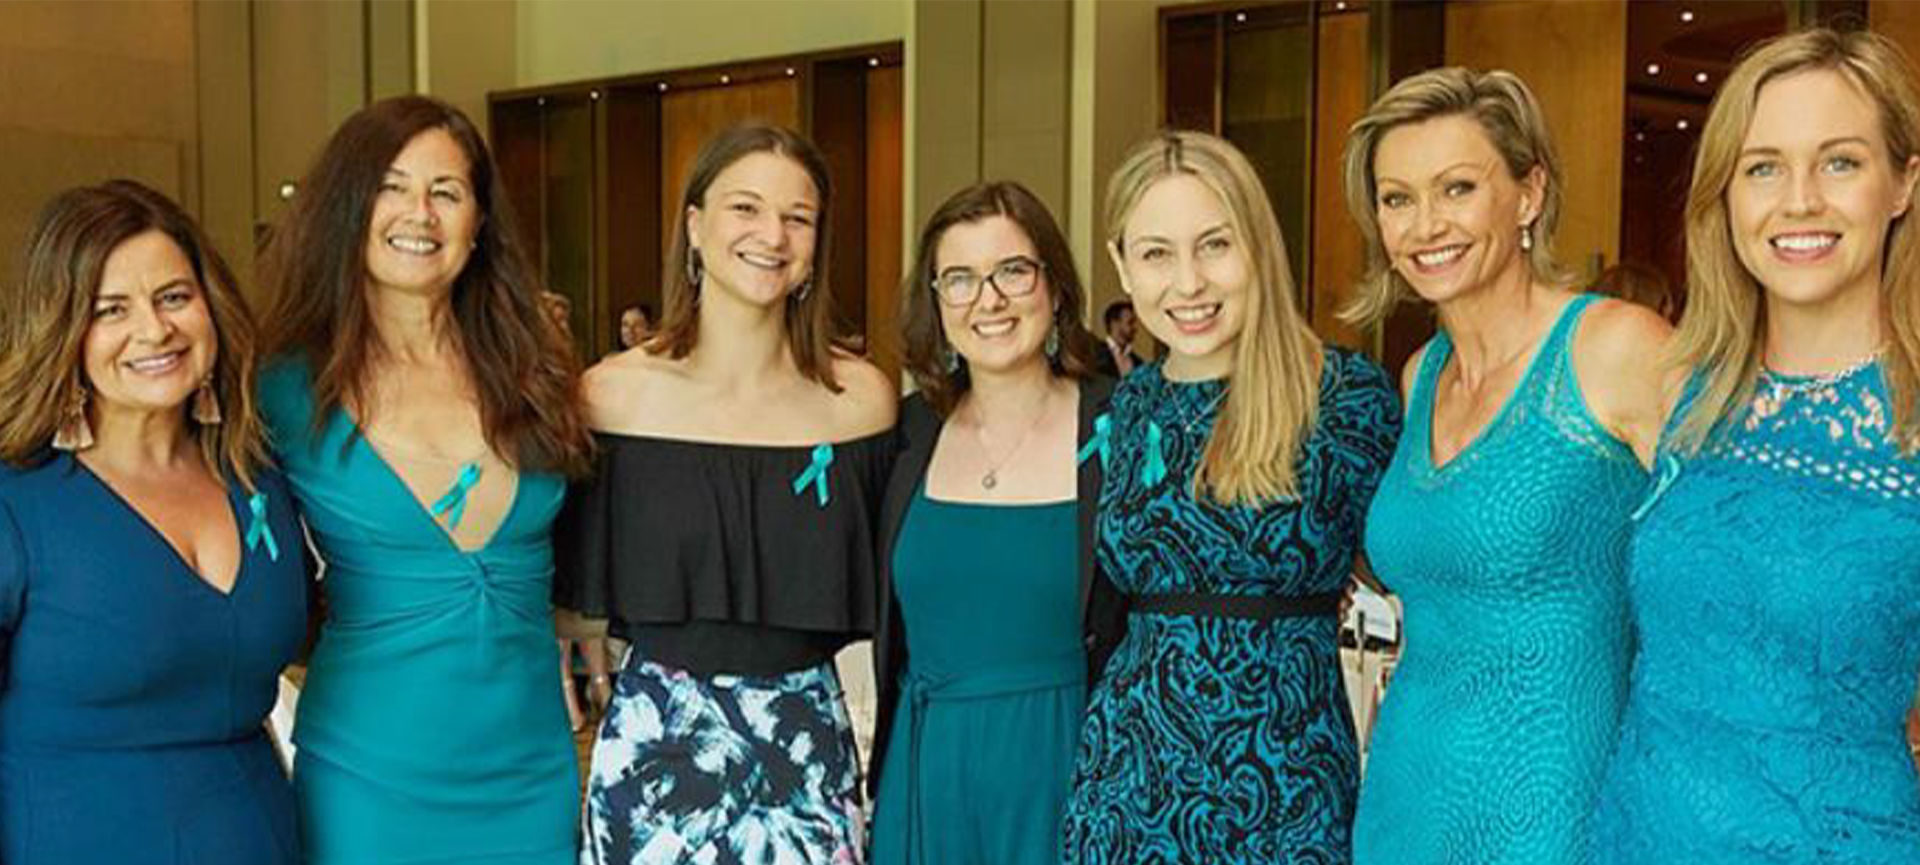 Seven women standing in a row, arms around each other, wearing blue outfits